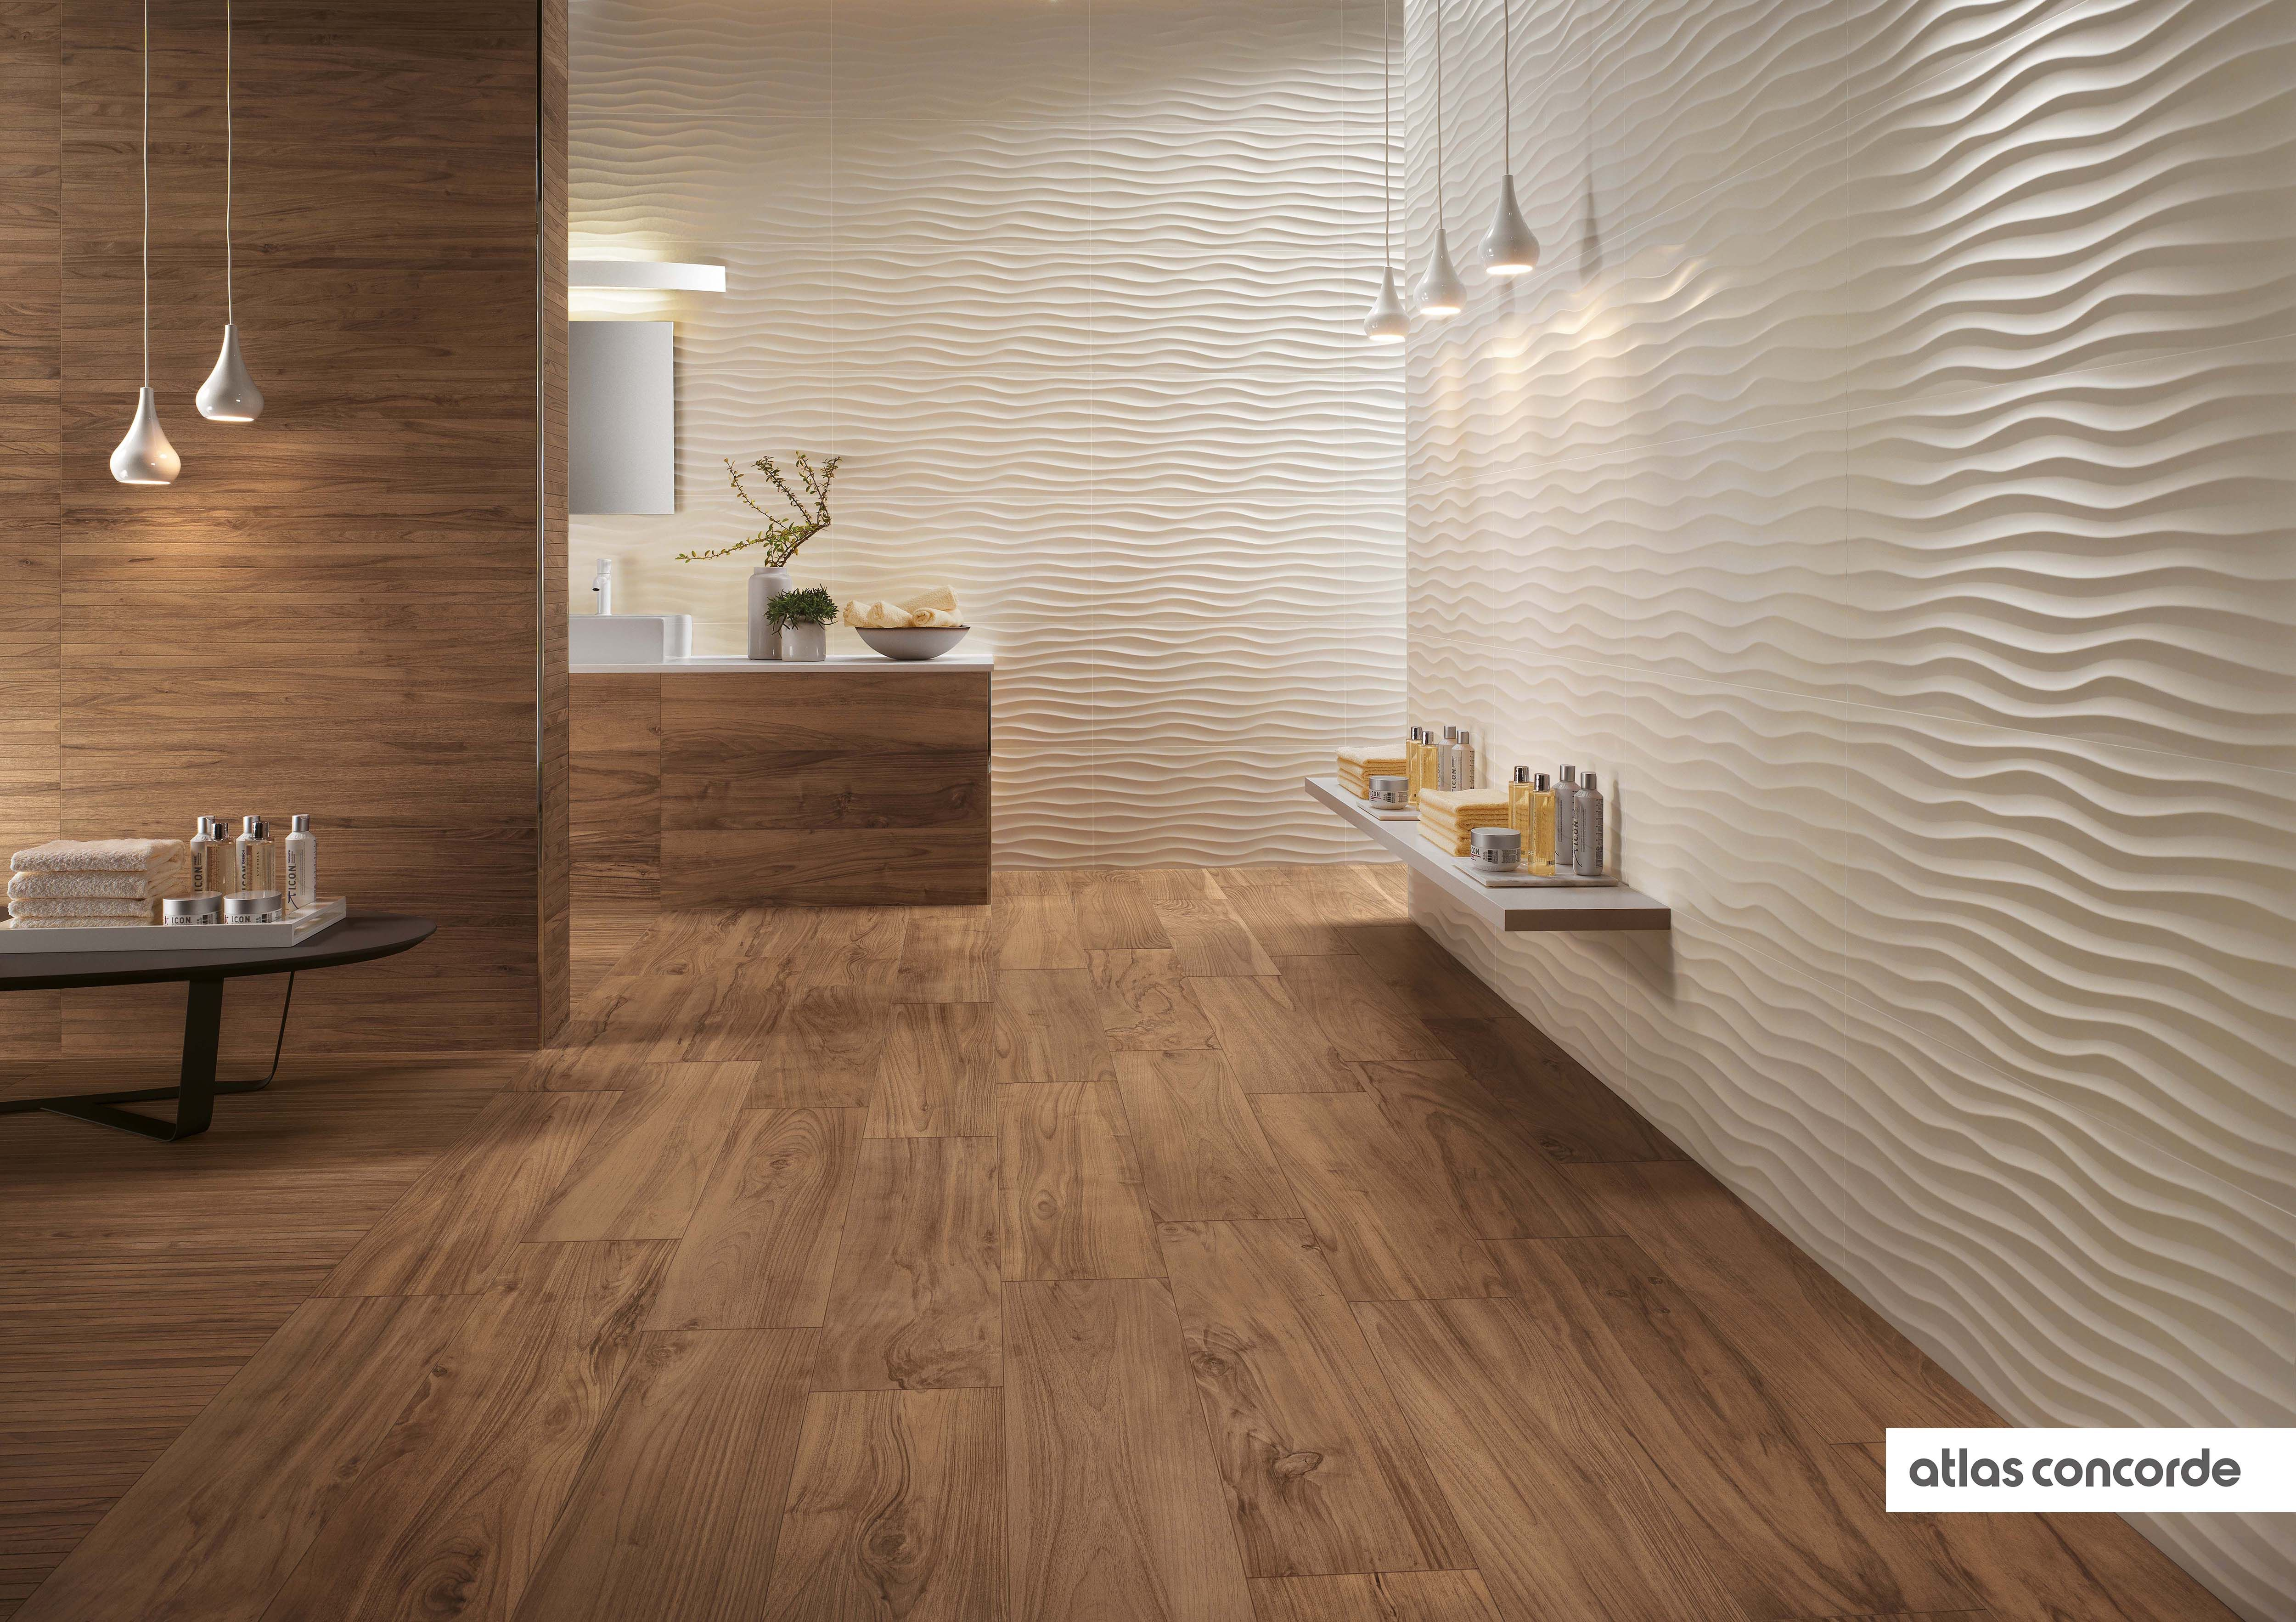 Unusual 1200 X 1200 Floor Tiles Tiny 2 Inch Ceramic Tile Shaped 3X6 Glass Subway Tile 4 X 10 Subway Tile Old 4 X 4 Ceramic Tile Dark4X4 Ceramic Tile Home Depot Tile Flooring | 3d Wall, Wall Tiles And Showroom